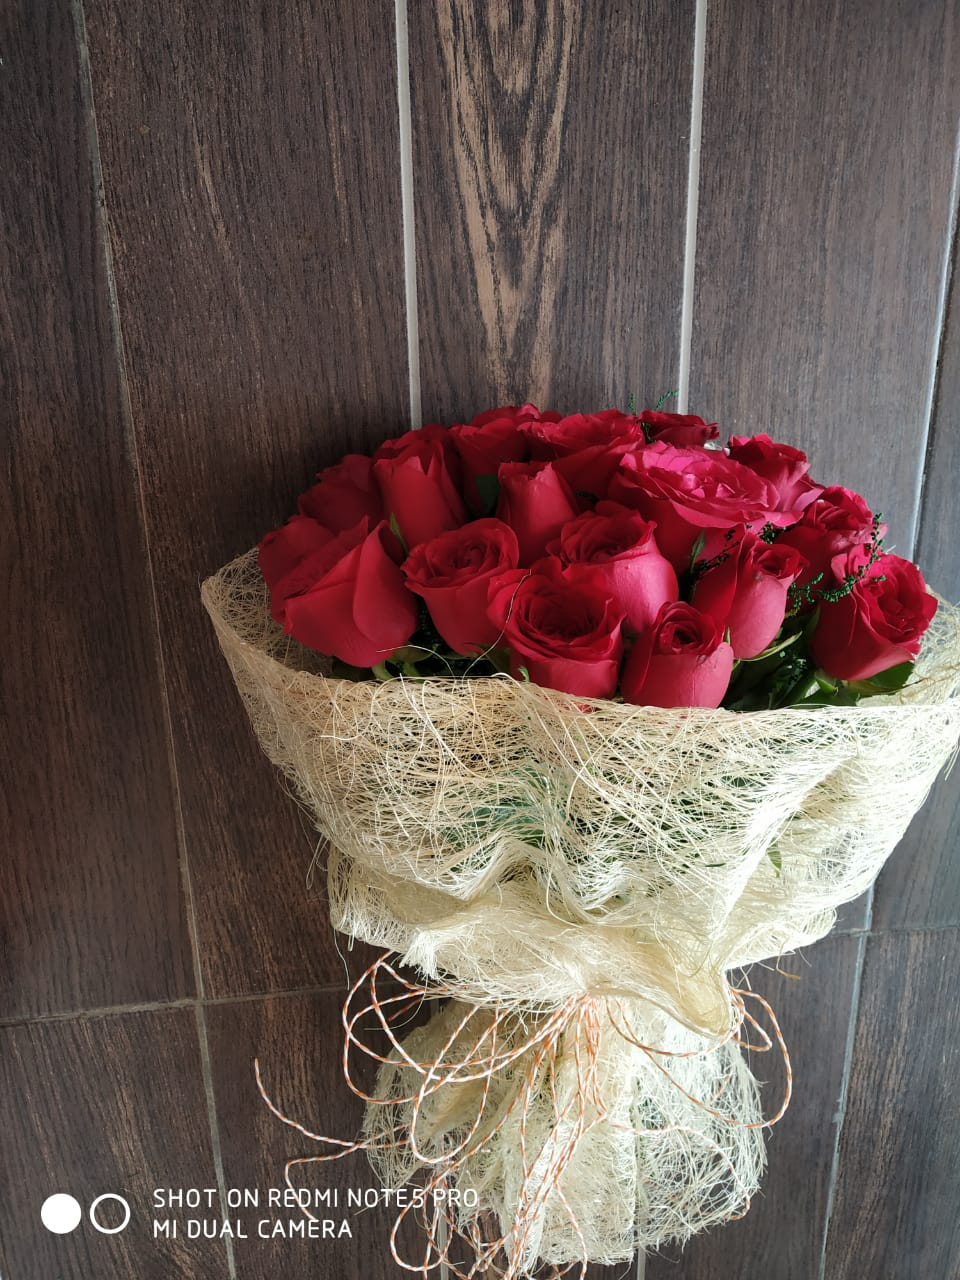 Cake Delivery Wazir Pur DelhiRed Roses in Jute